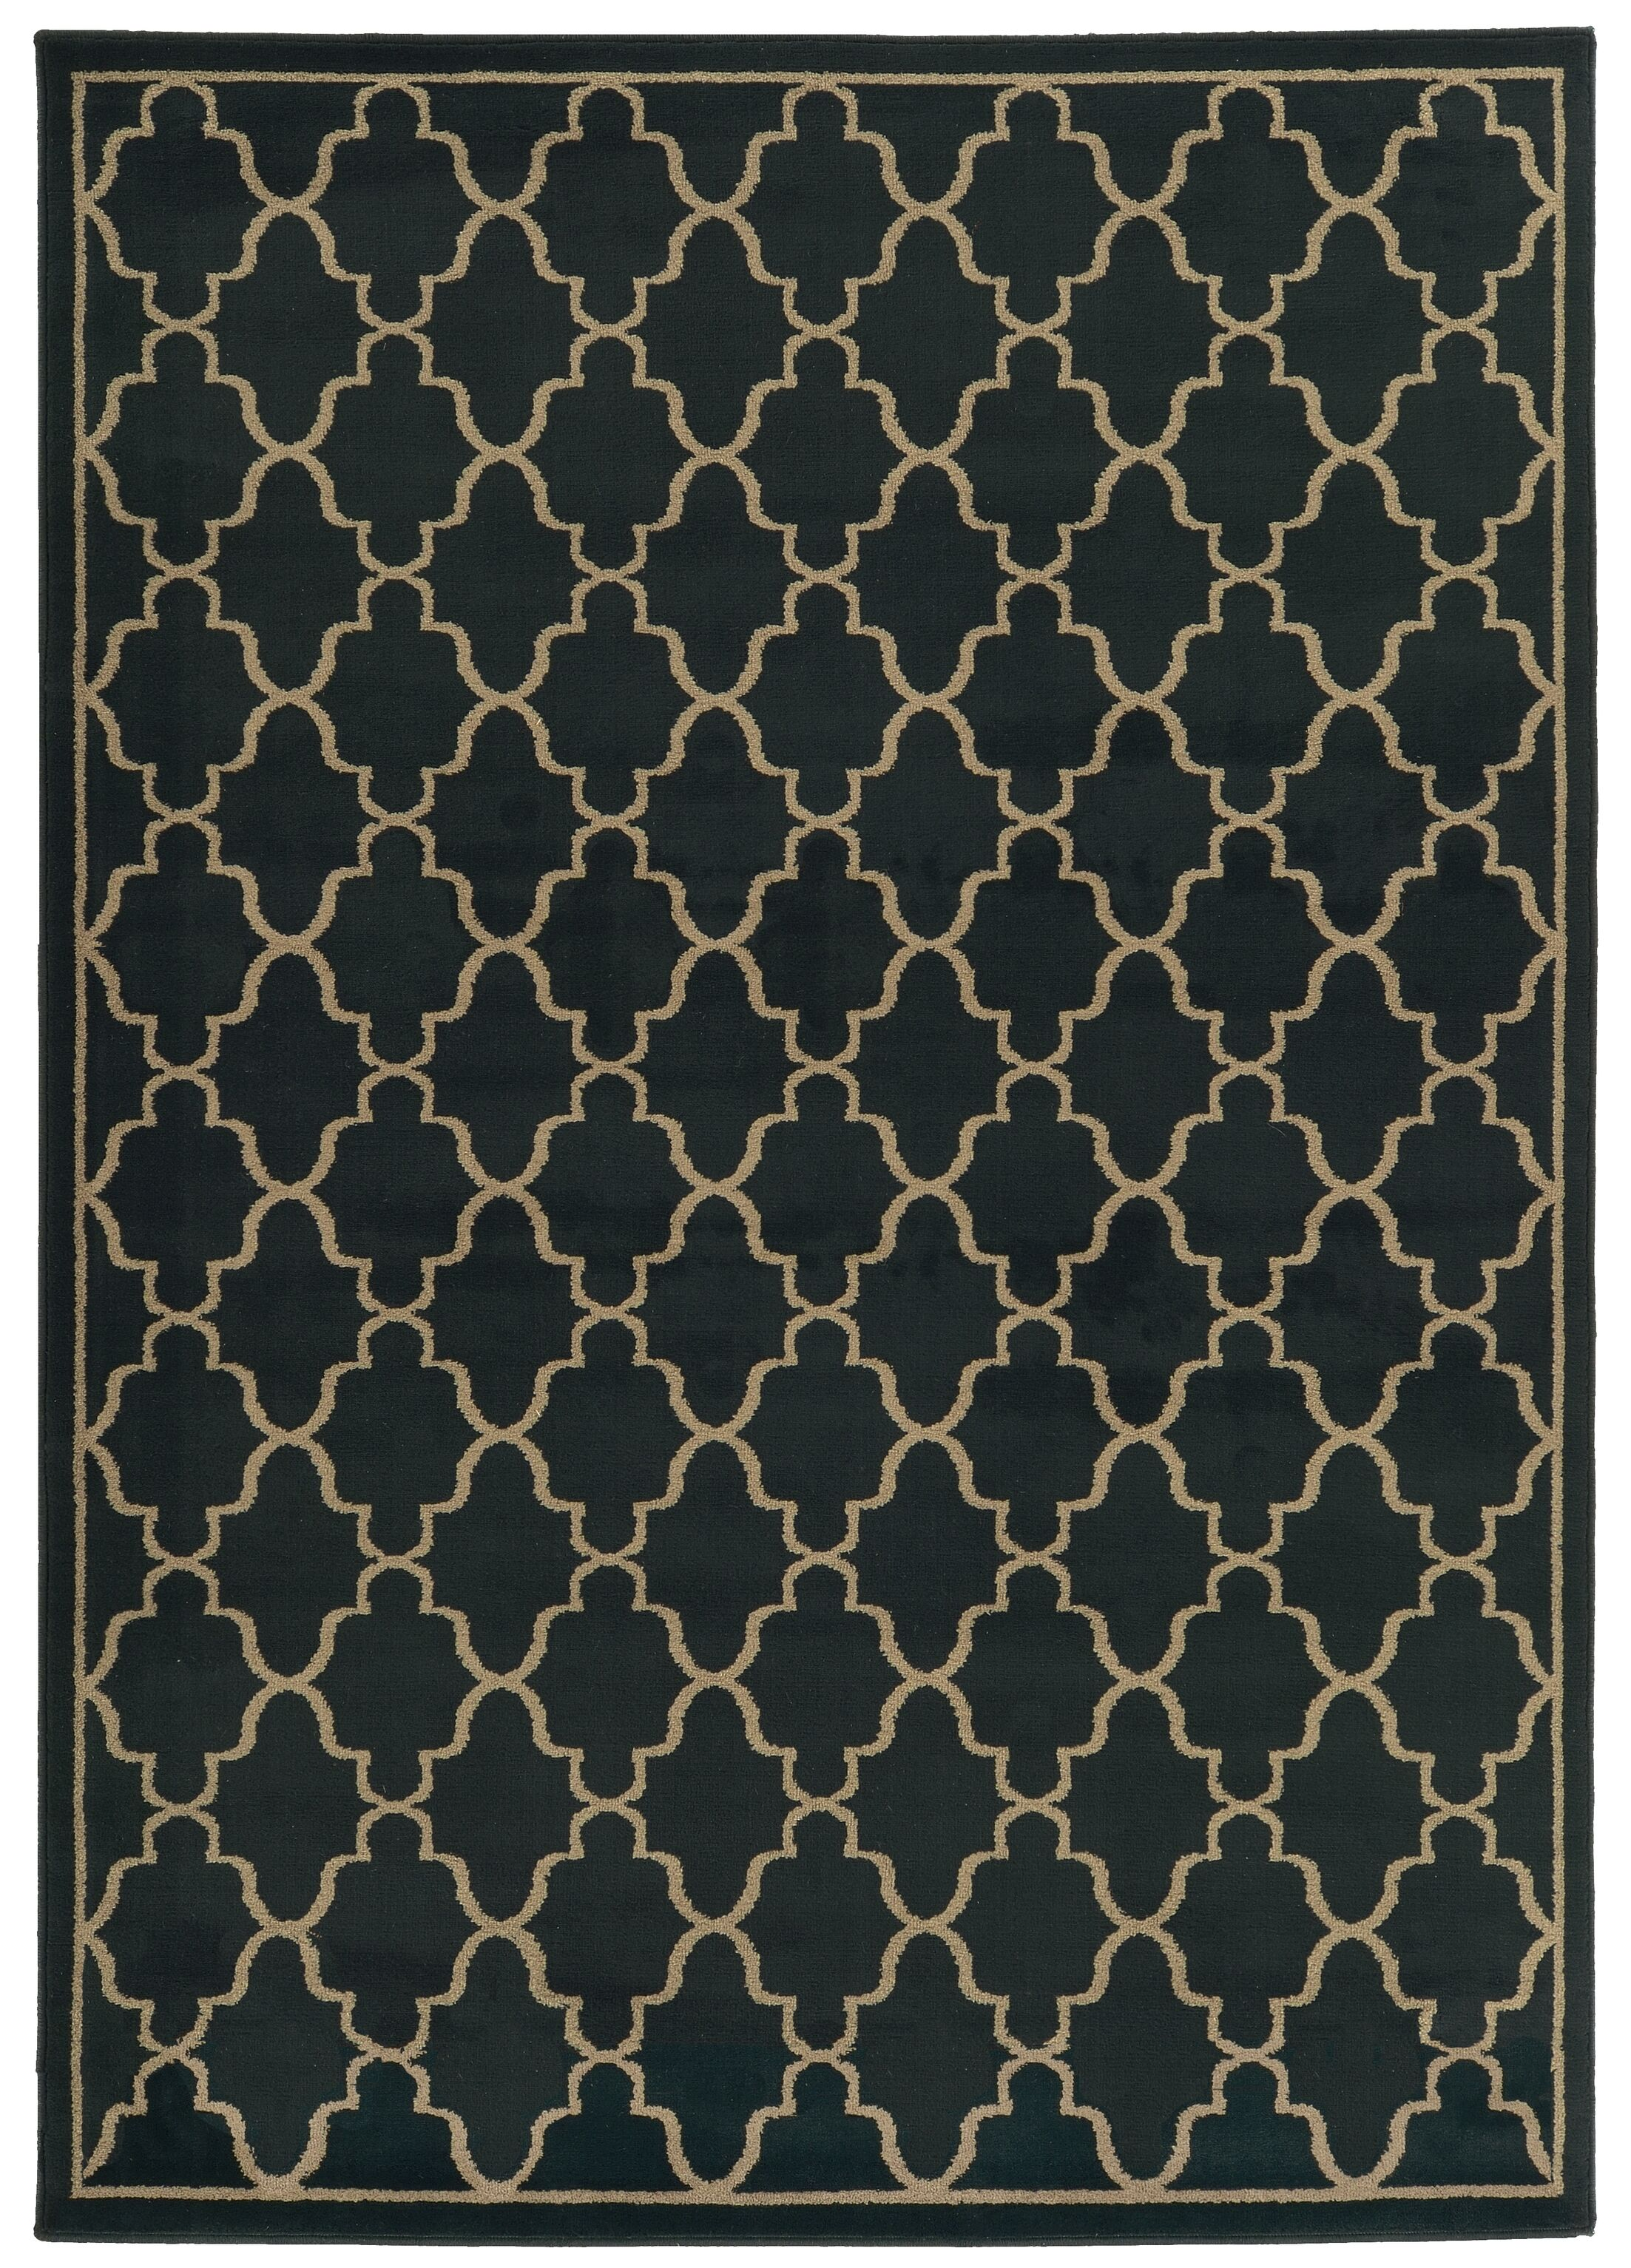 Delshire Lattice Navy/Light Grey Area Rug Rug Size: Rectangle 1'1 x 3'3